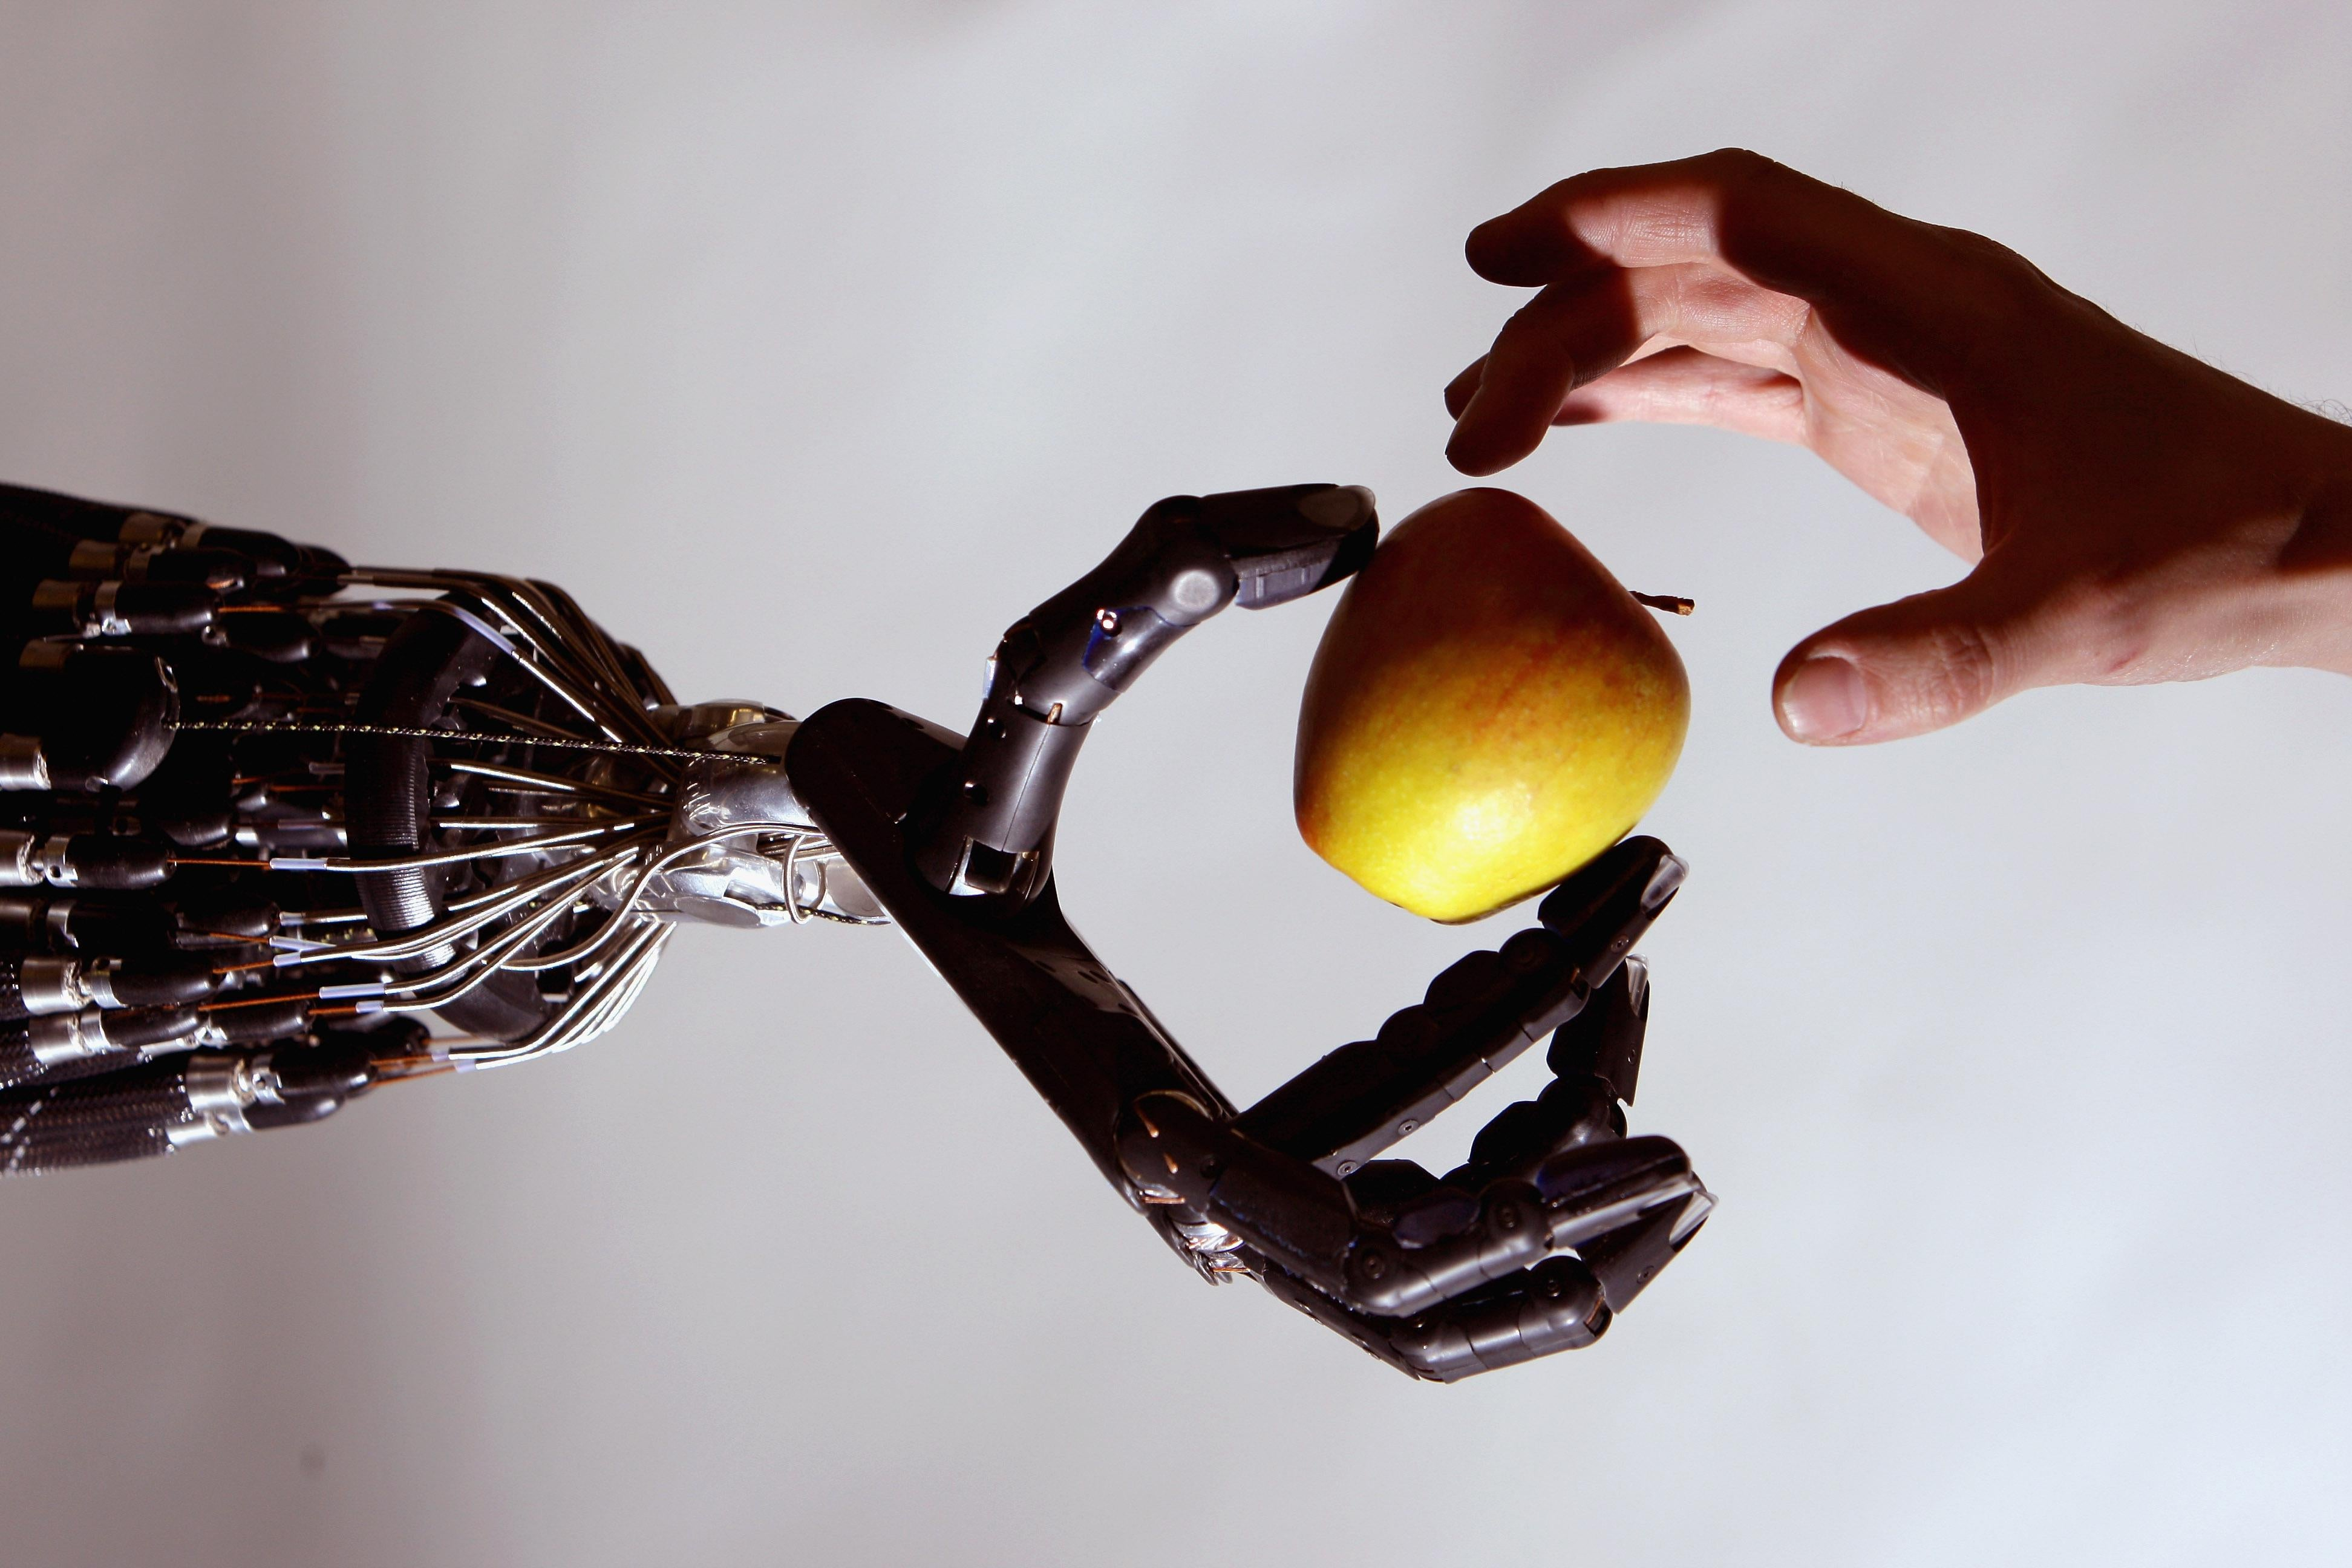 The Shadow Robot company's dextrous hand robot holds an apple at a robotics event in London.